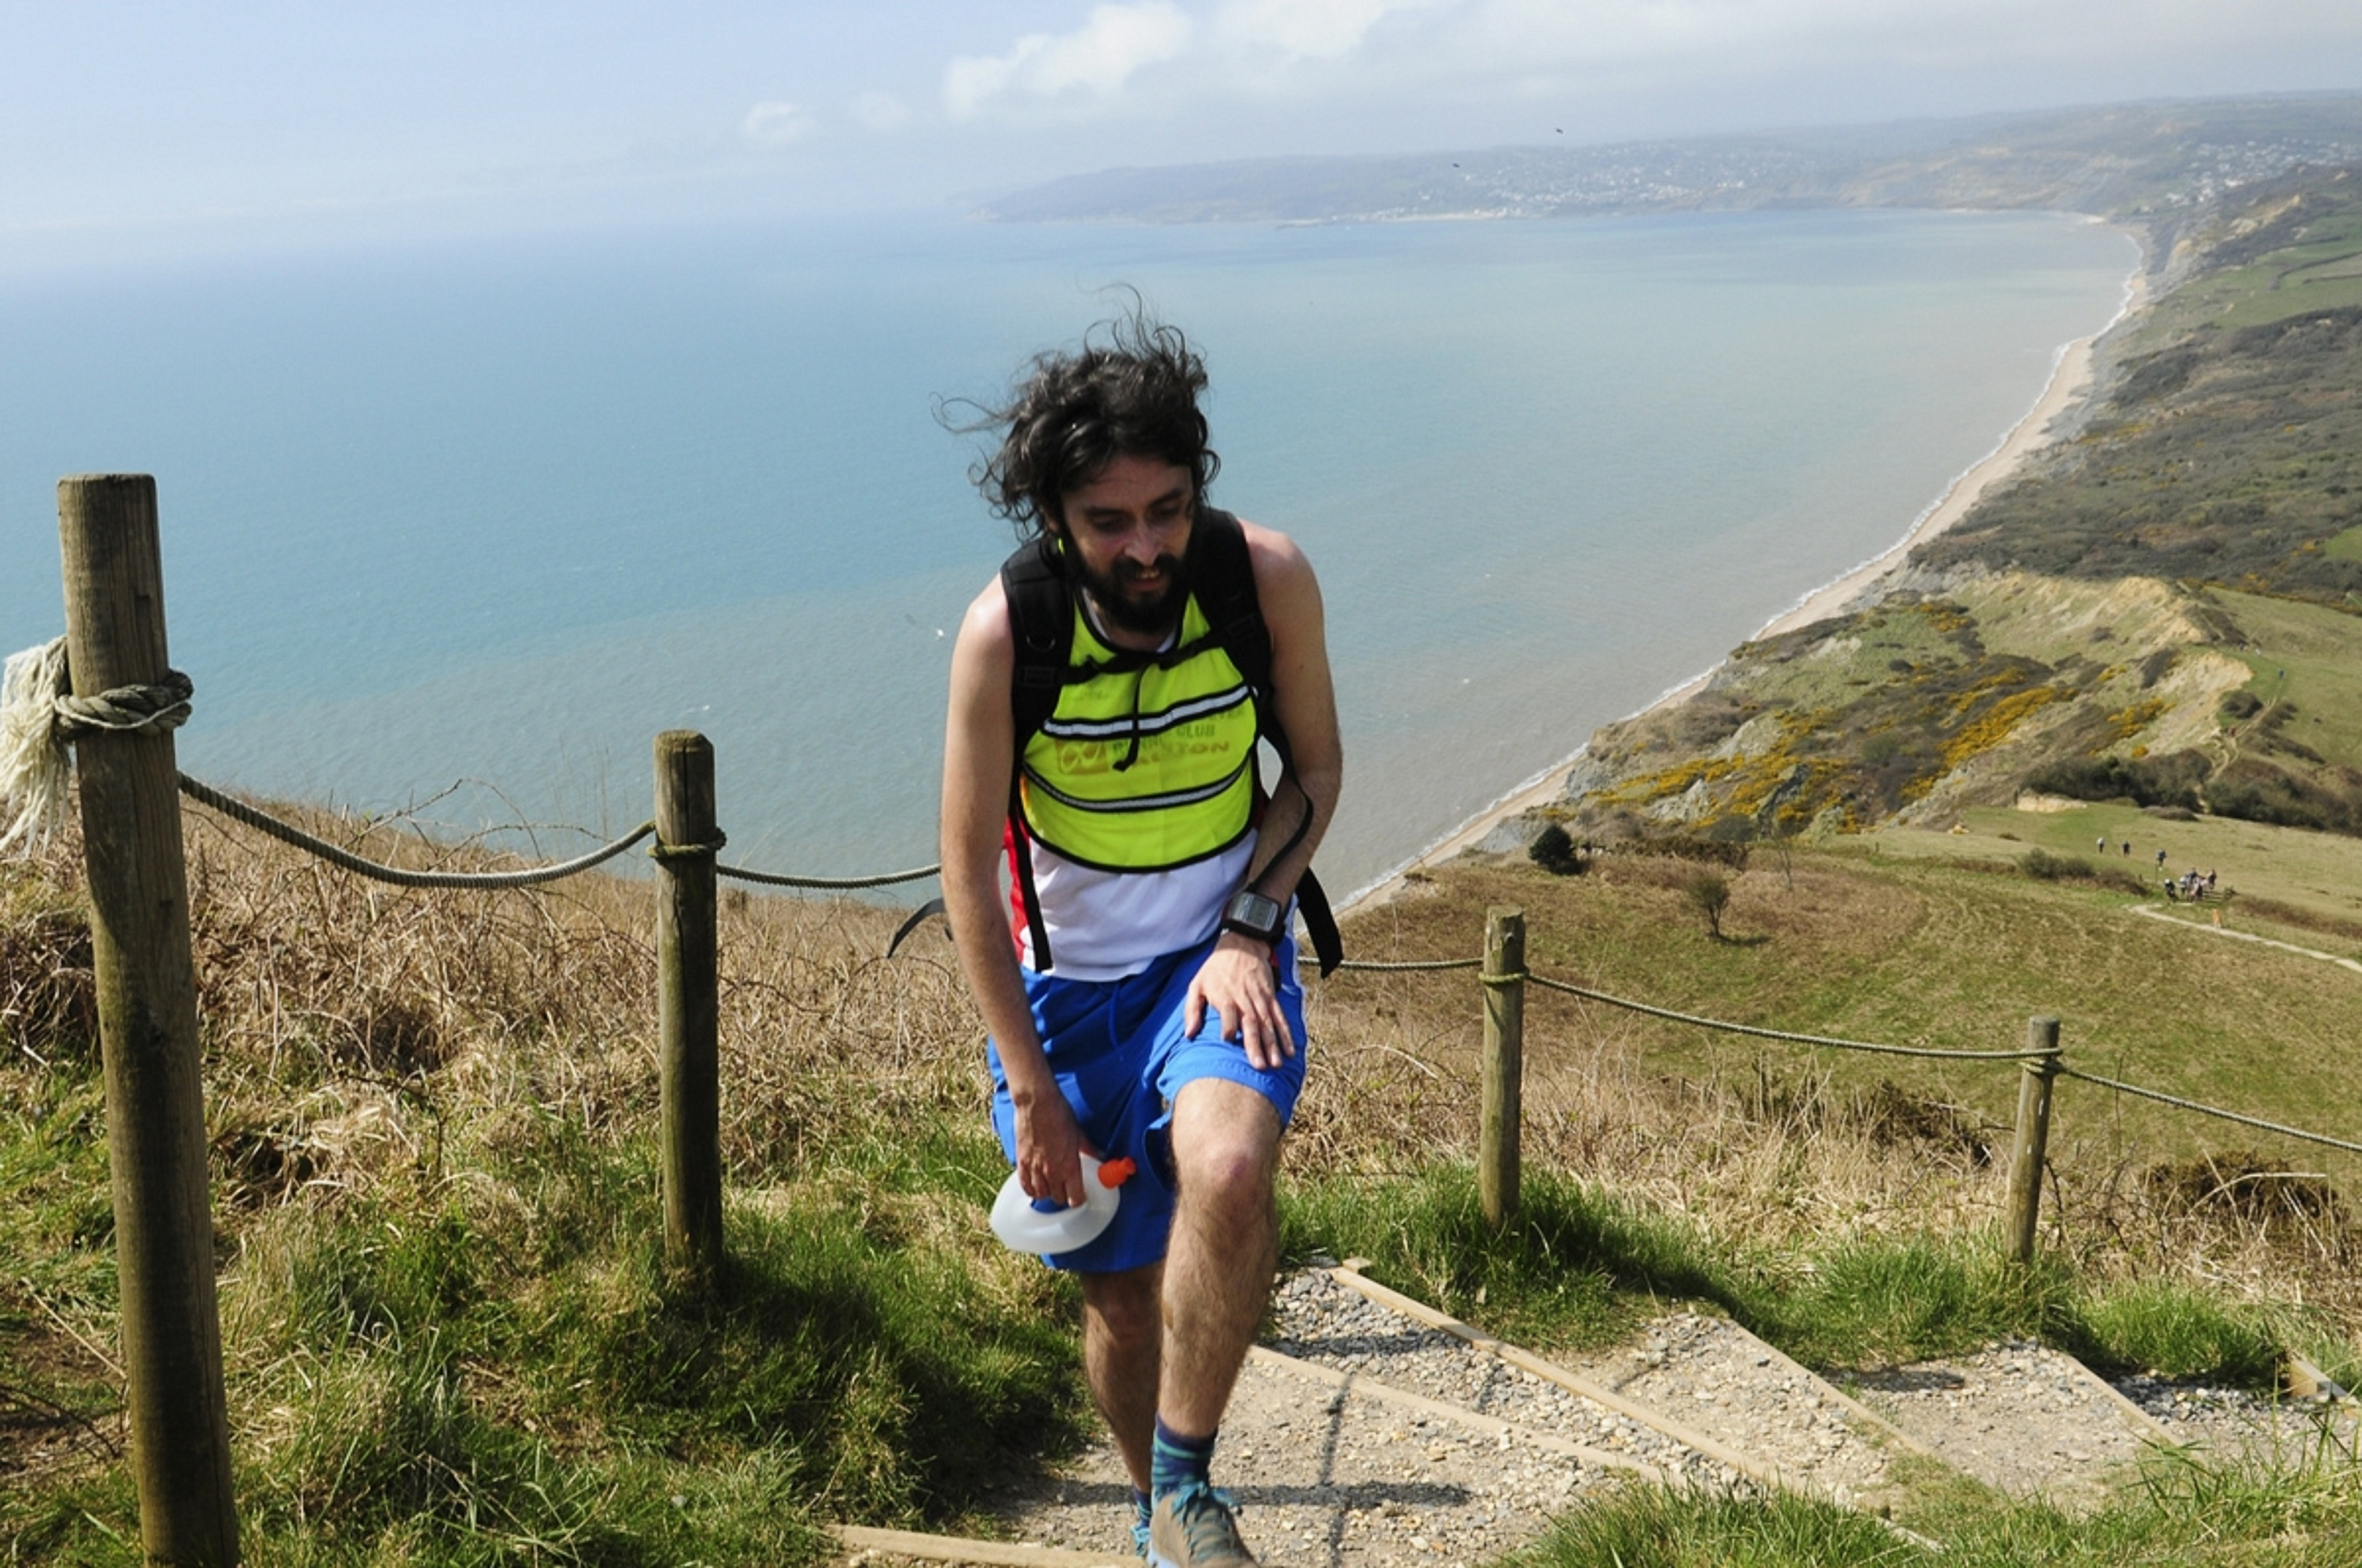 Dave now runs ultra marathons up to 80 miles long (Charles Whitton Photography)